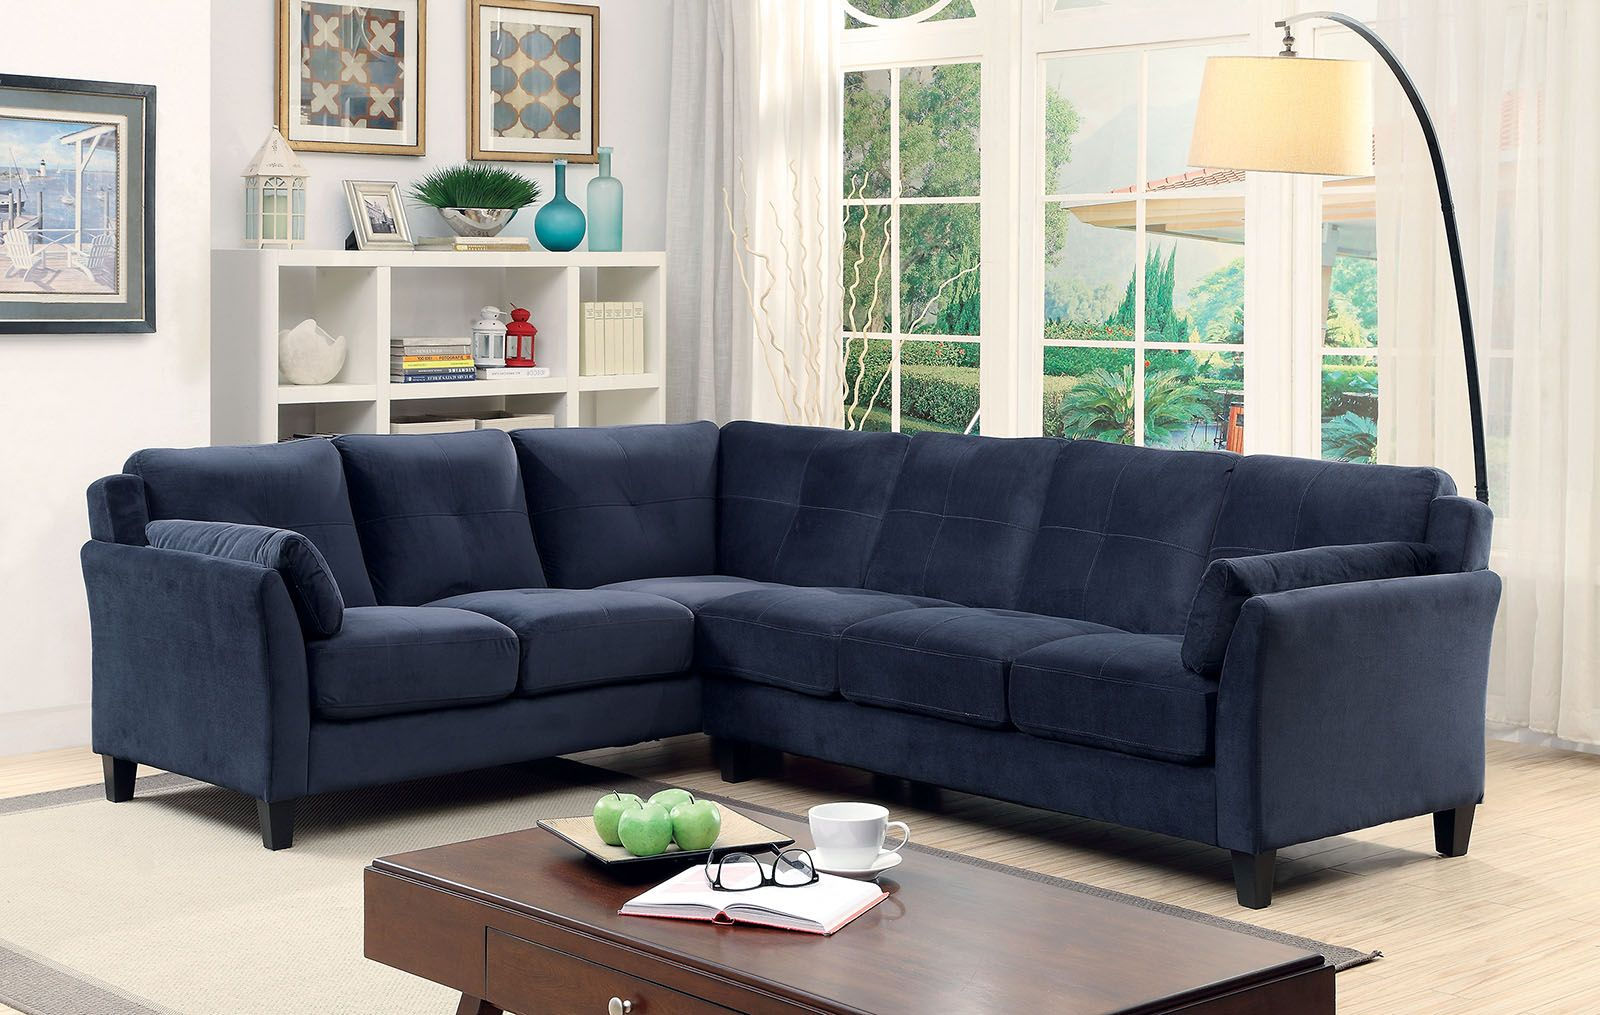 peever 6368nv navy blue contemporary sectional sofa my furniture rh pinterest com